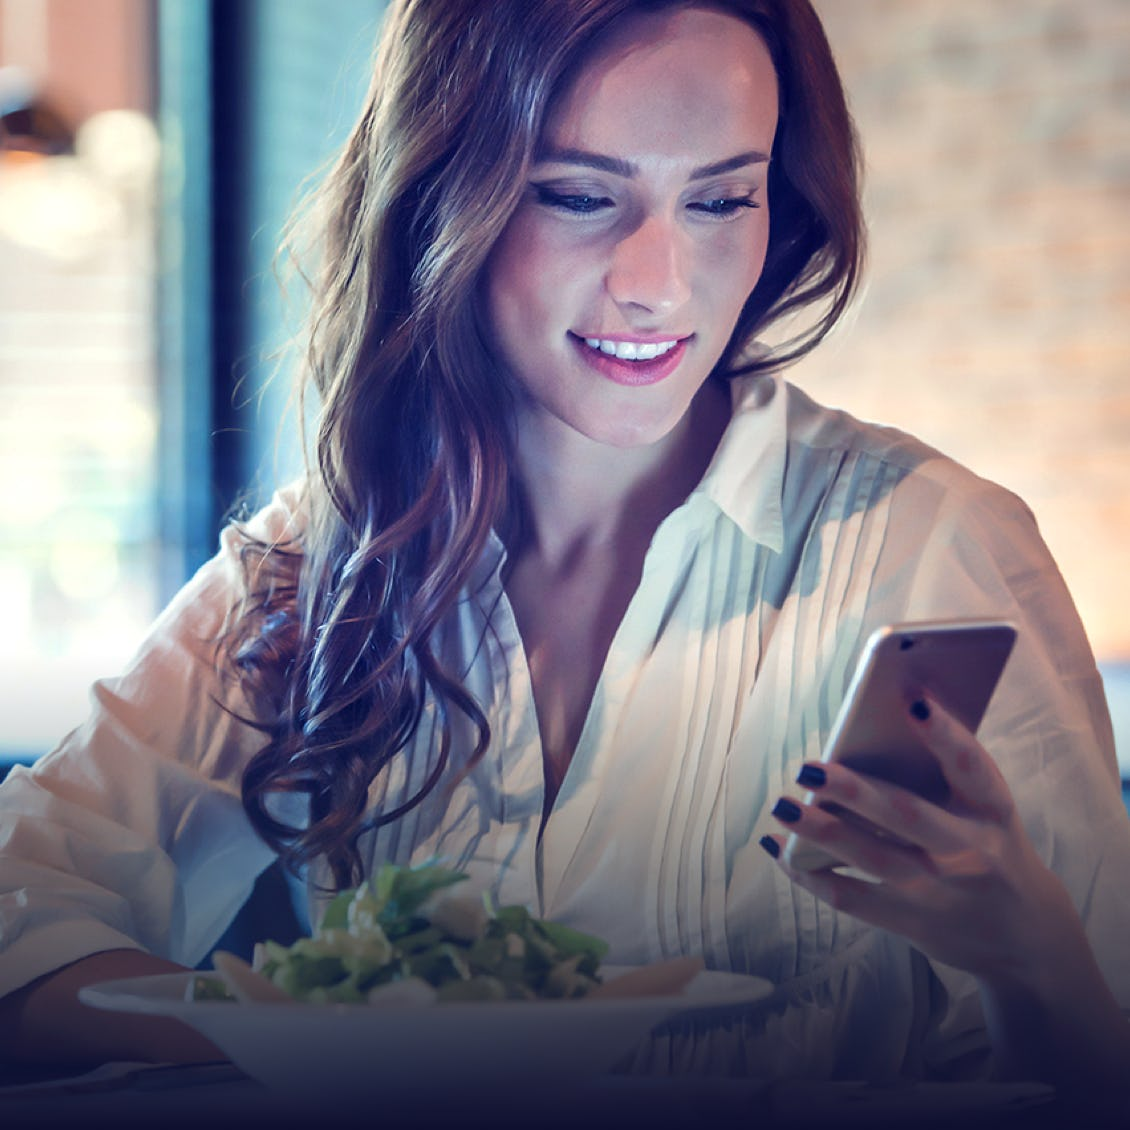 a woman looking at her phone and eating a salad